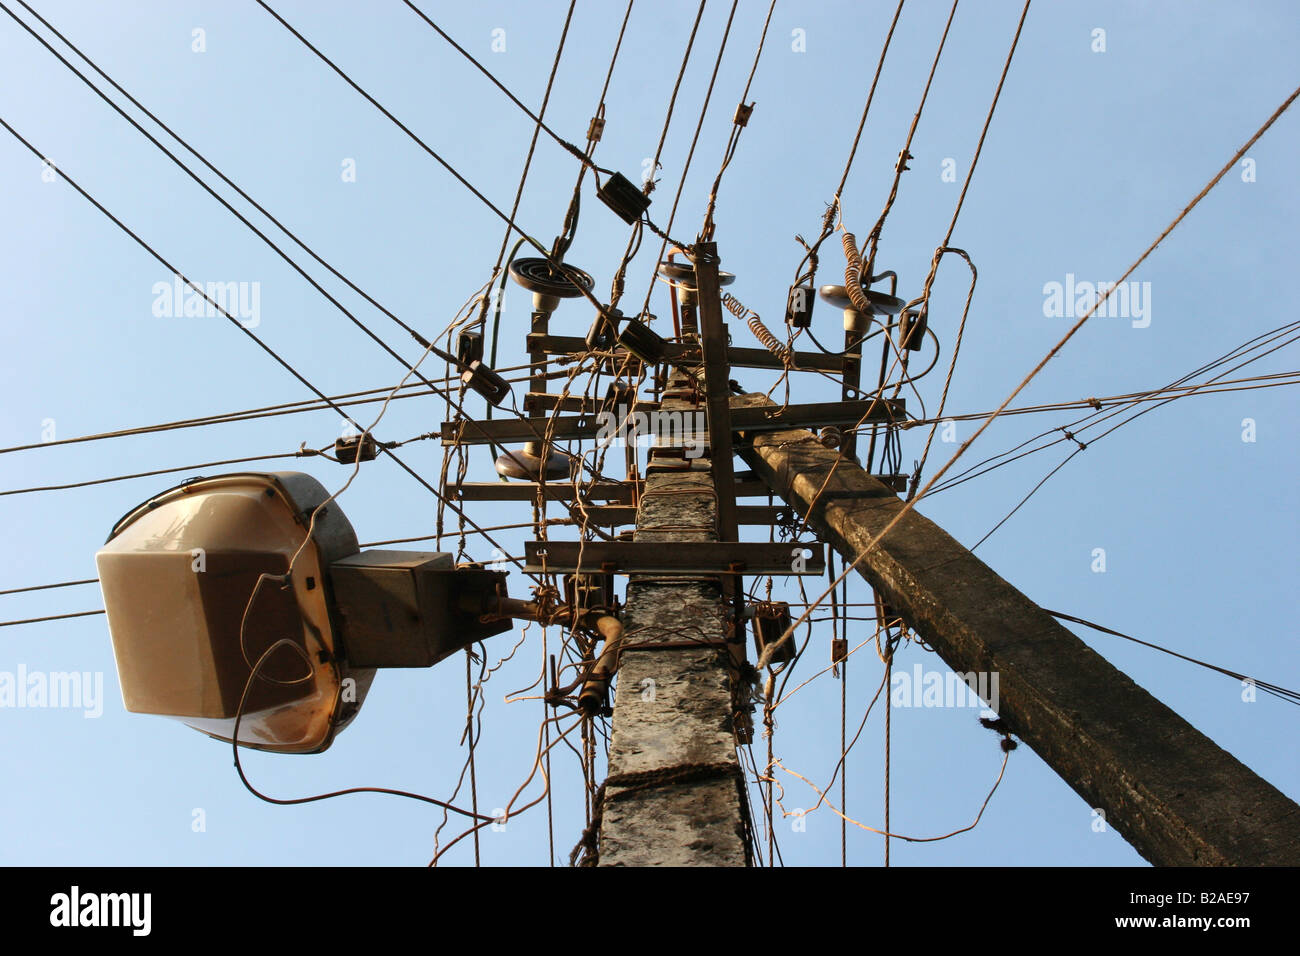 Wiring Chaos Stock Photos & Wiring Chaos Stock Images - Alamy